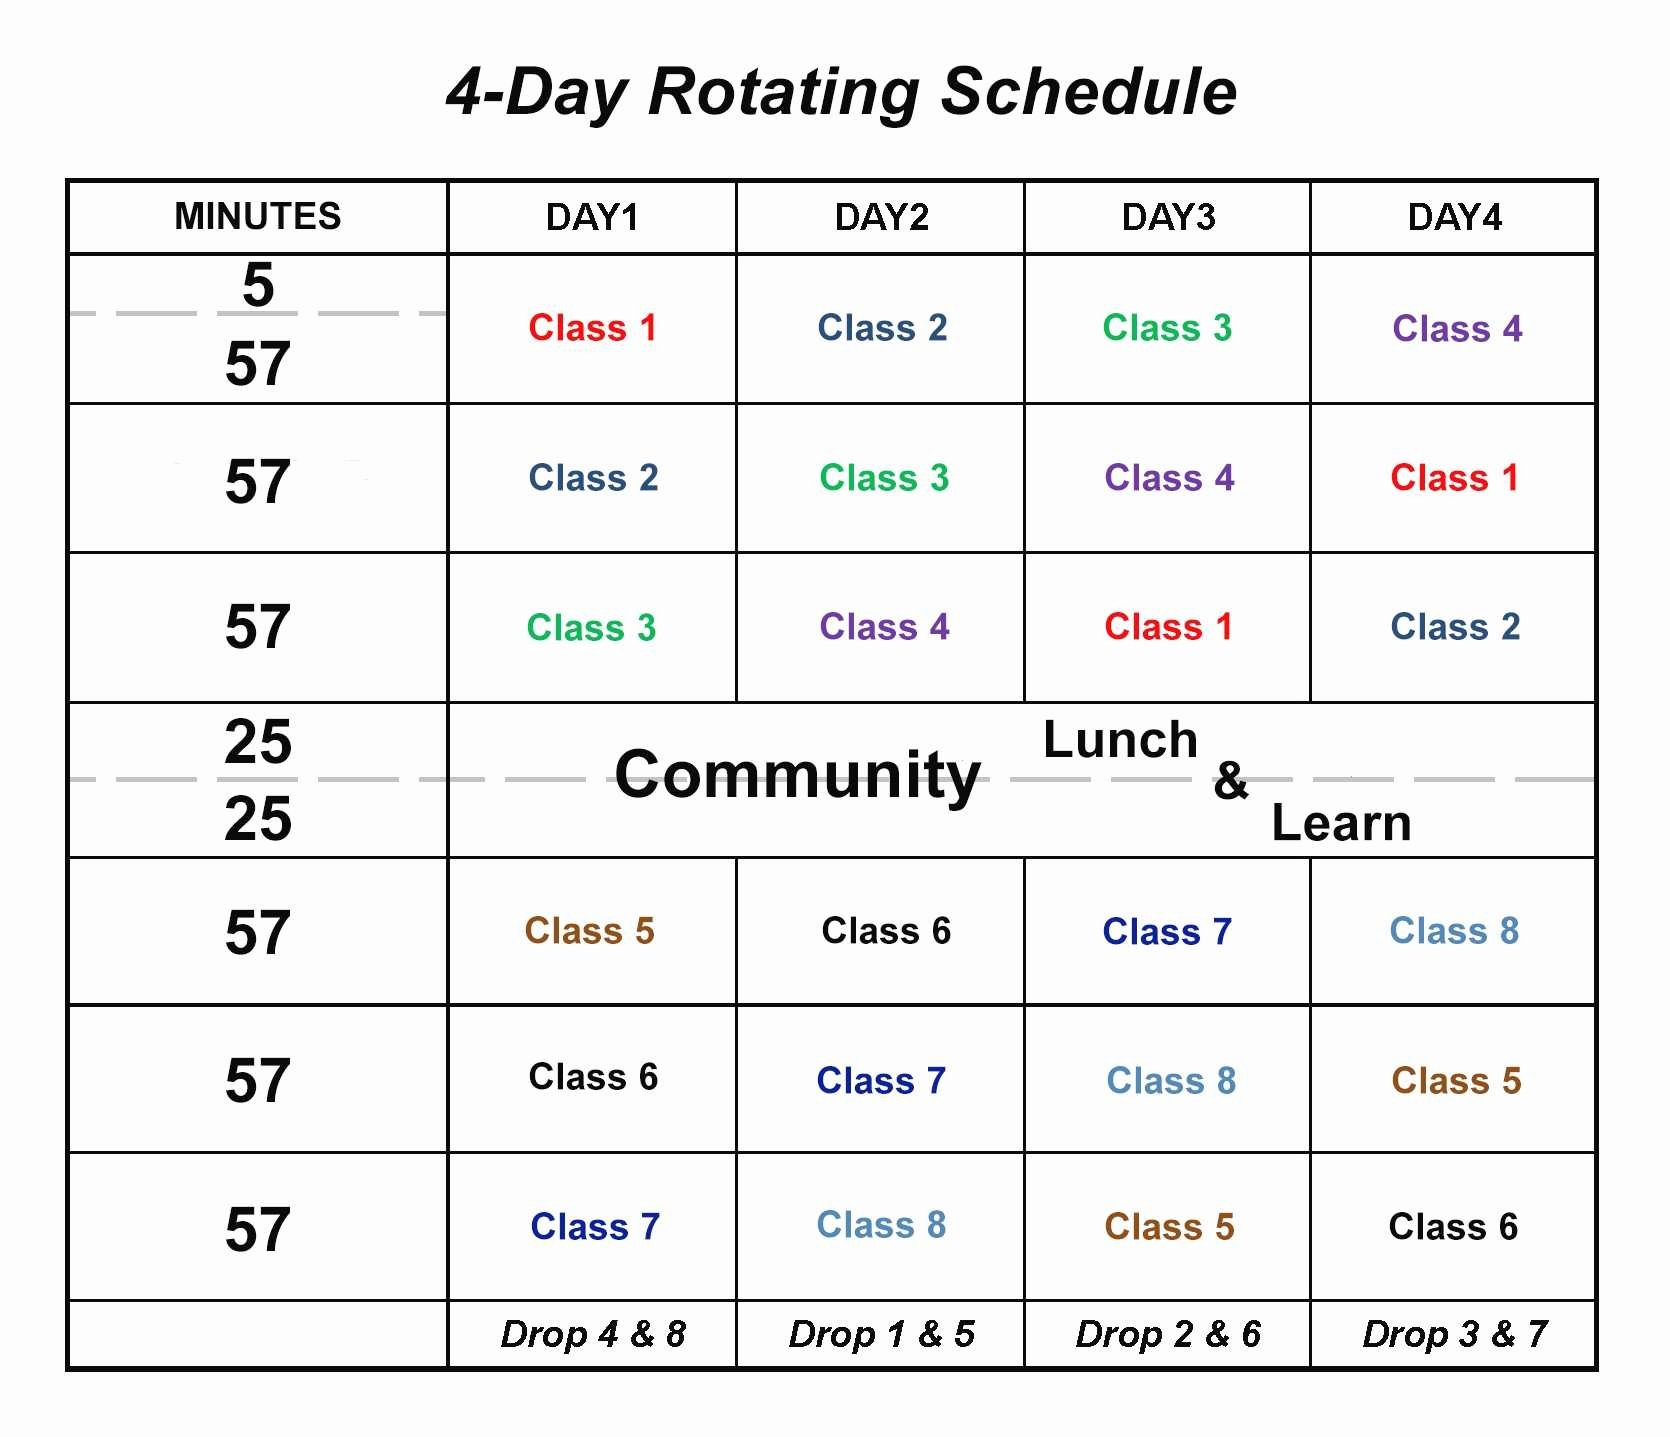 Rotating Shift Schedule Template Unique Monthly Rotating Shift Schedule Template Beautiful